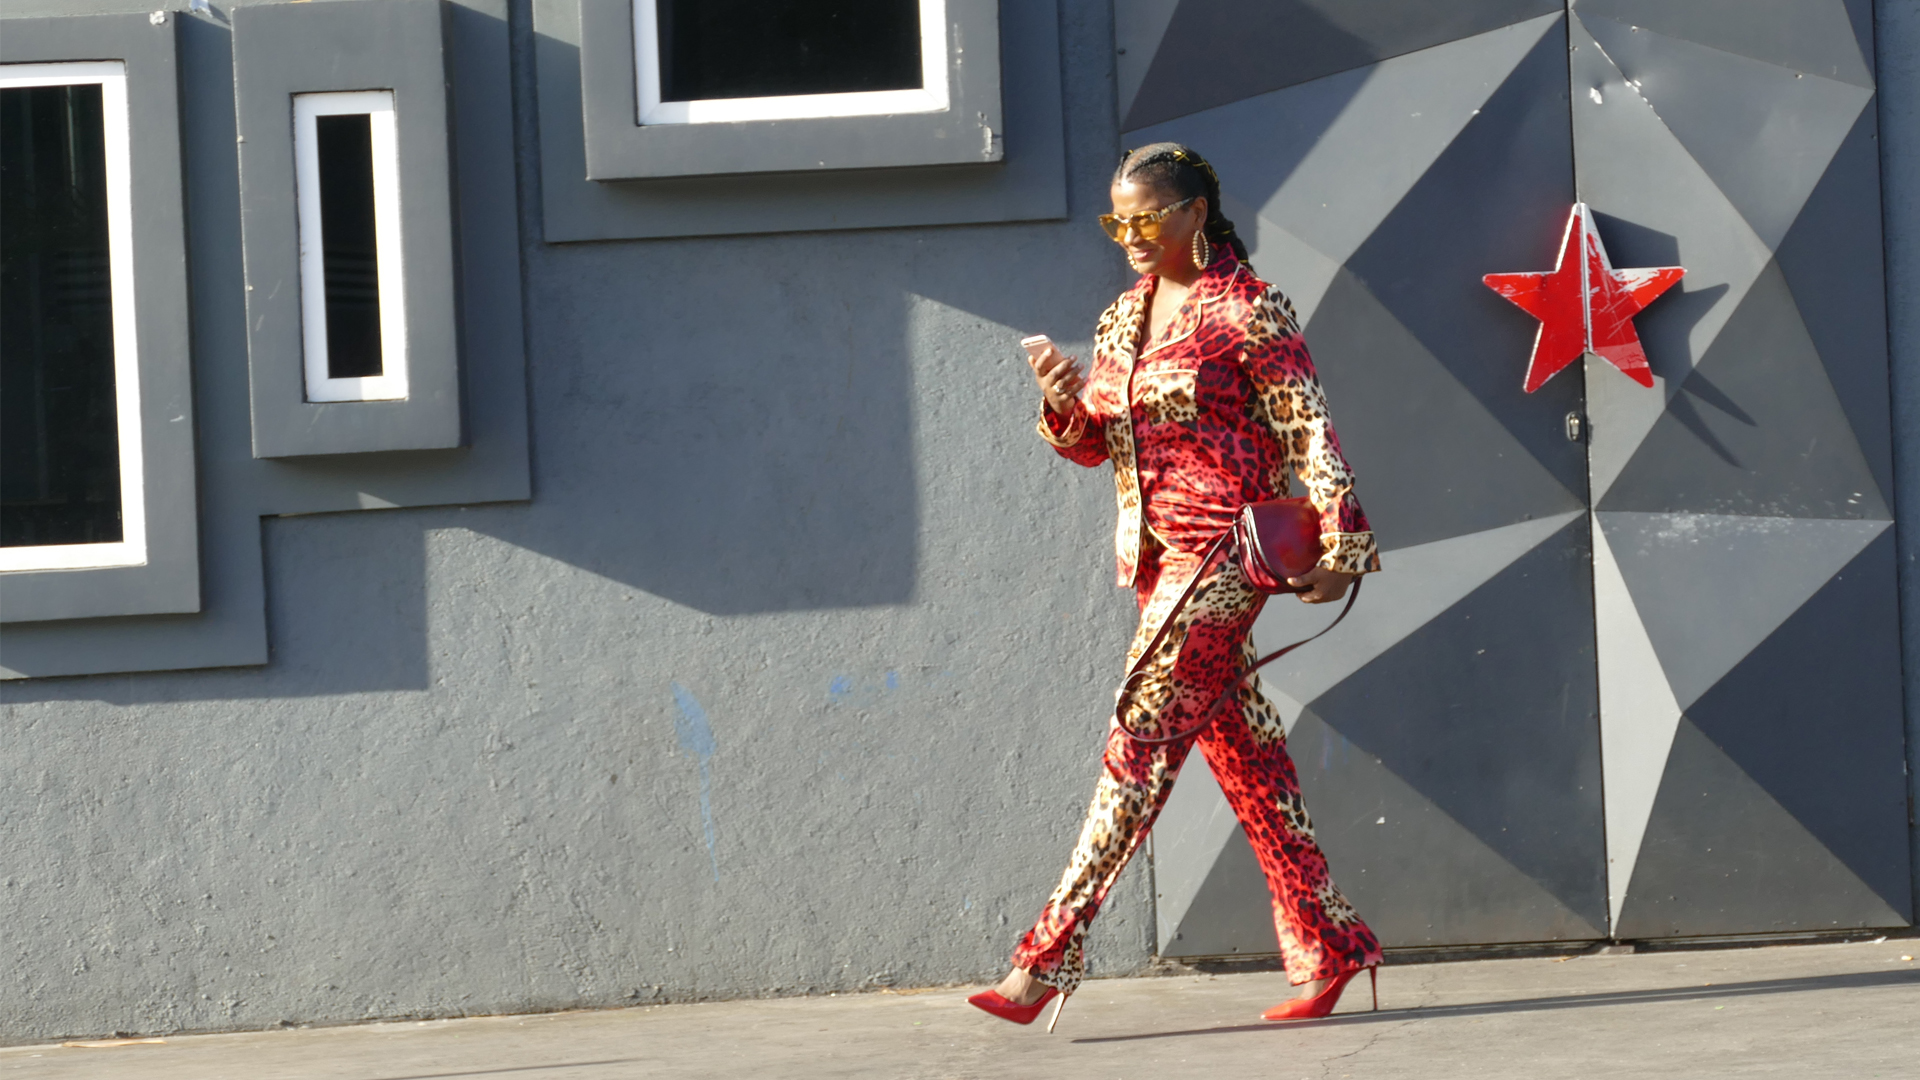 Taking Your PJs To The Street. How This Trend Mixes Glam With Comfort